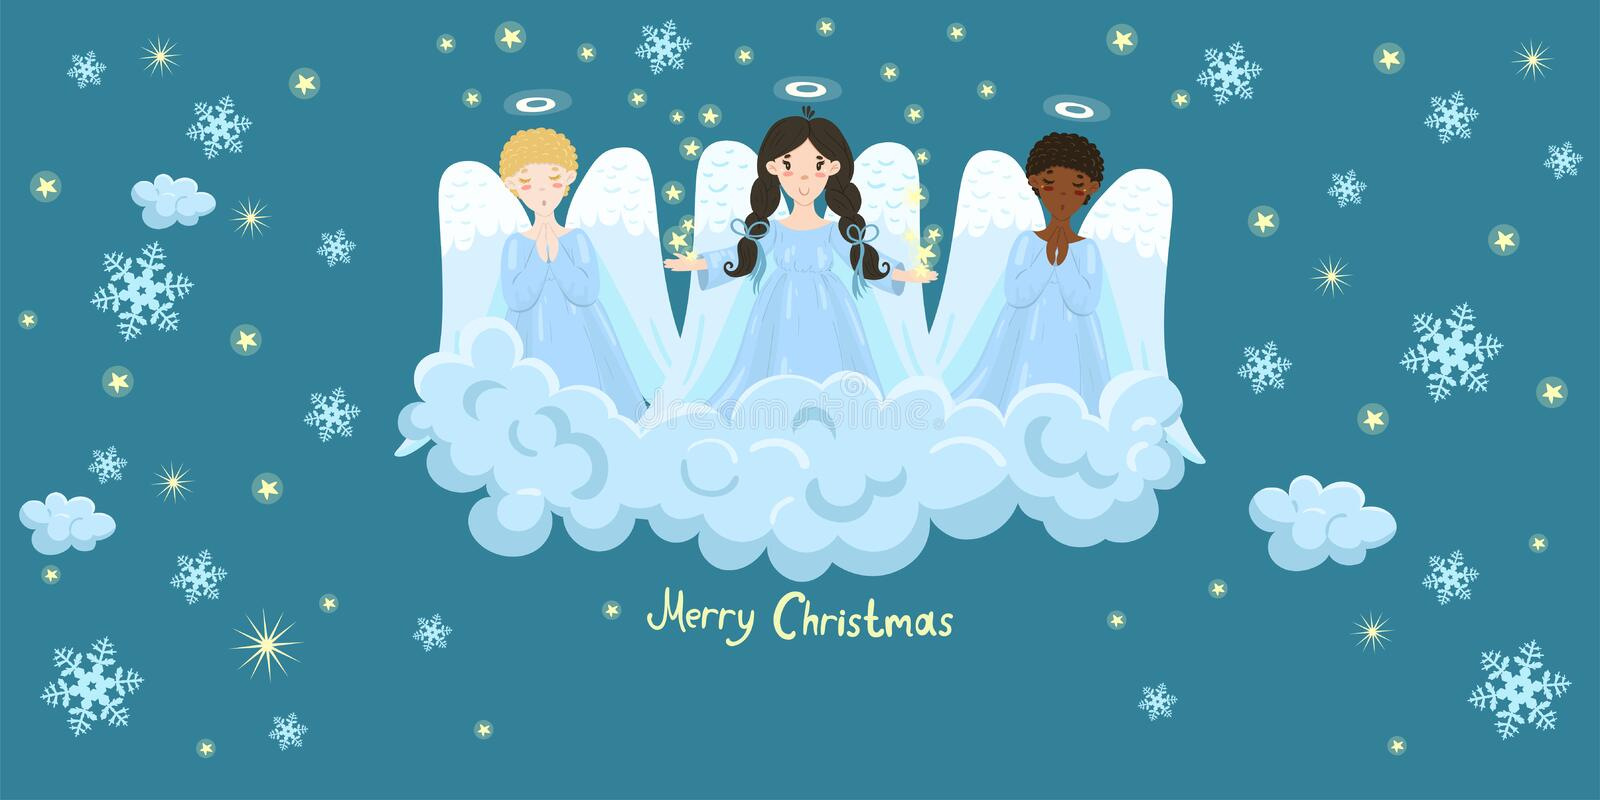 Chorus of angels on a cloud. Stars and snowflakes. Image vector illustration